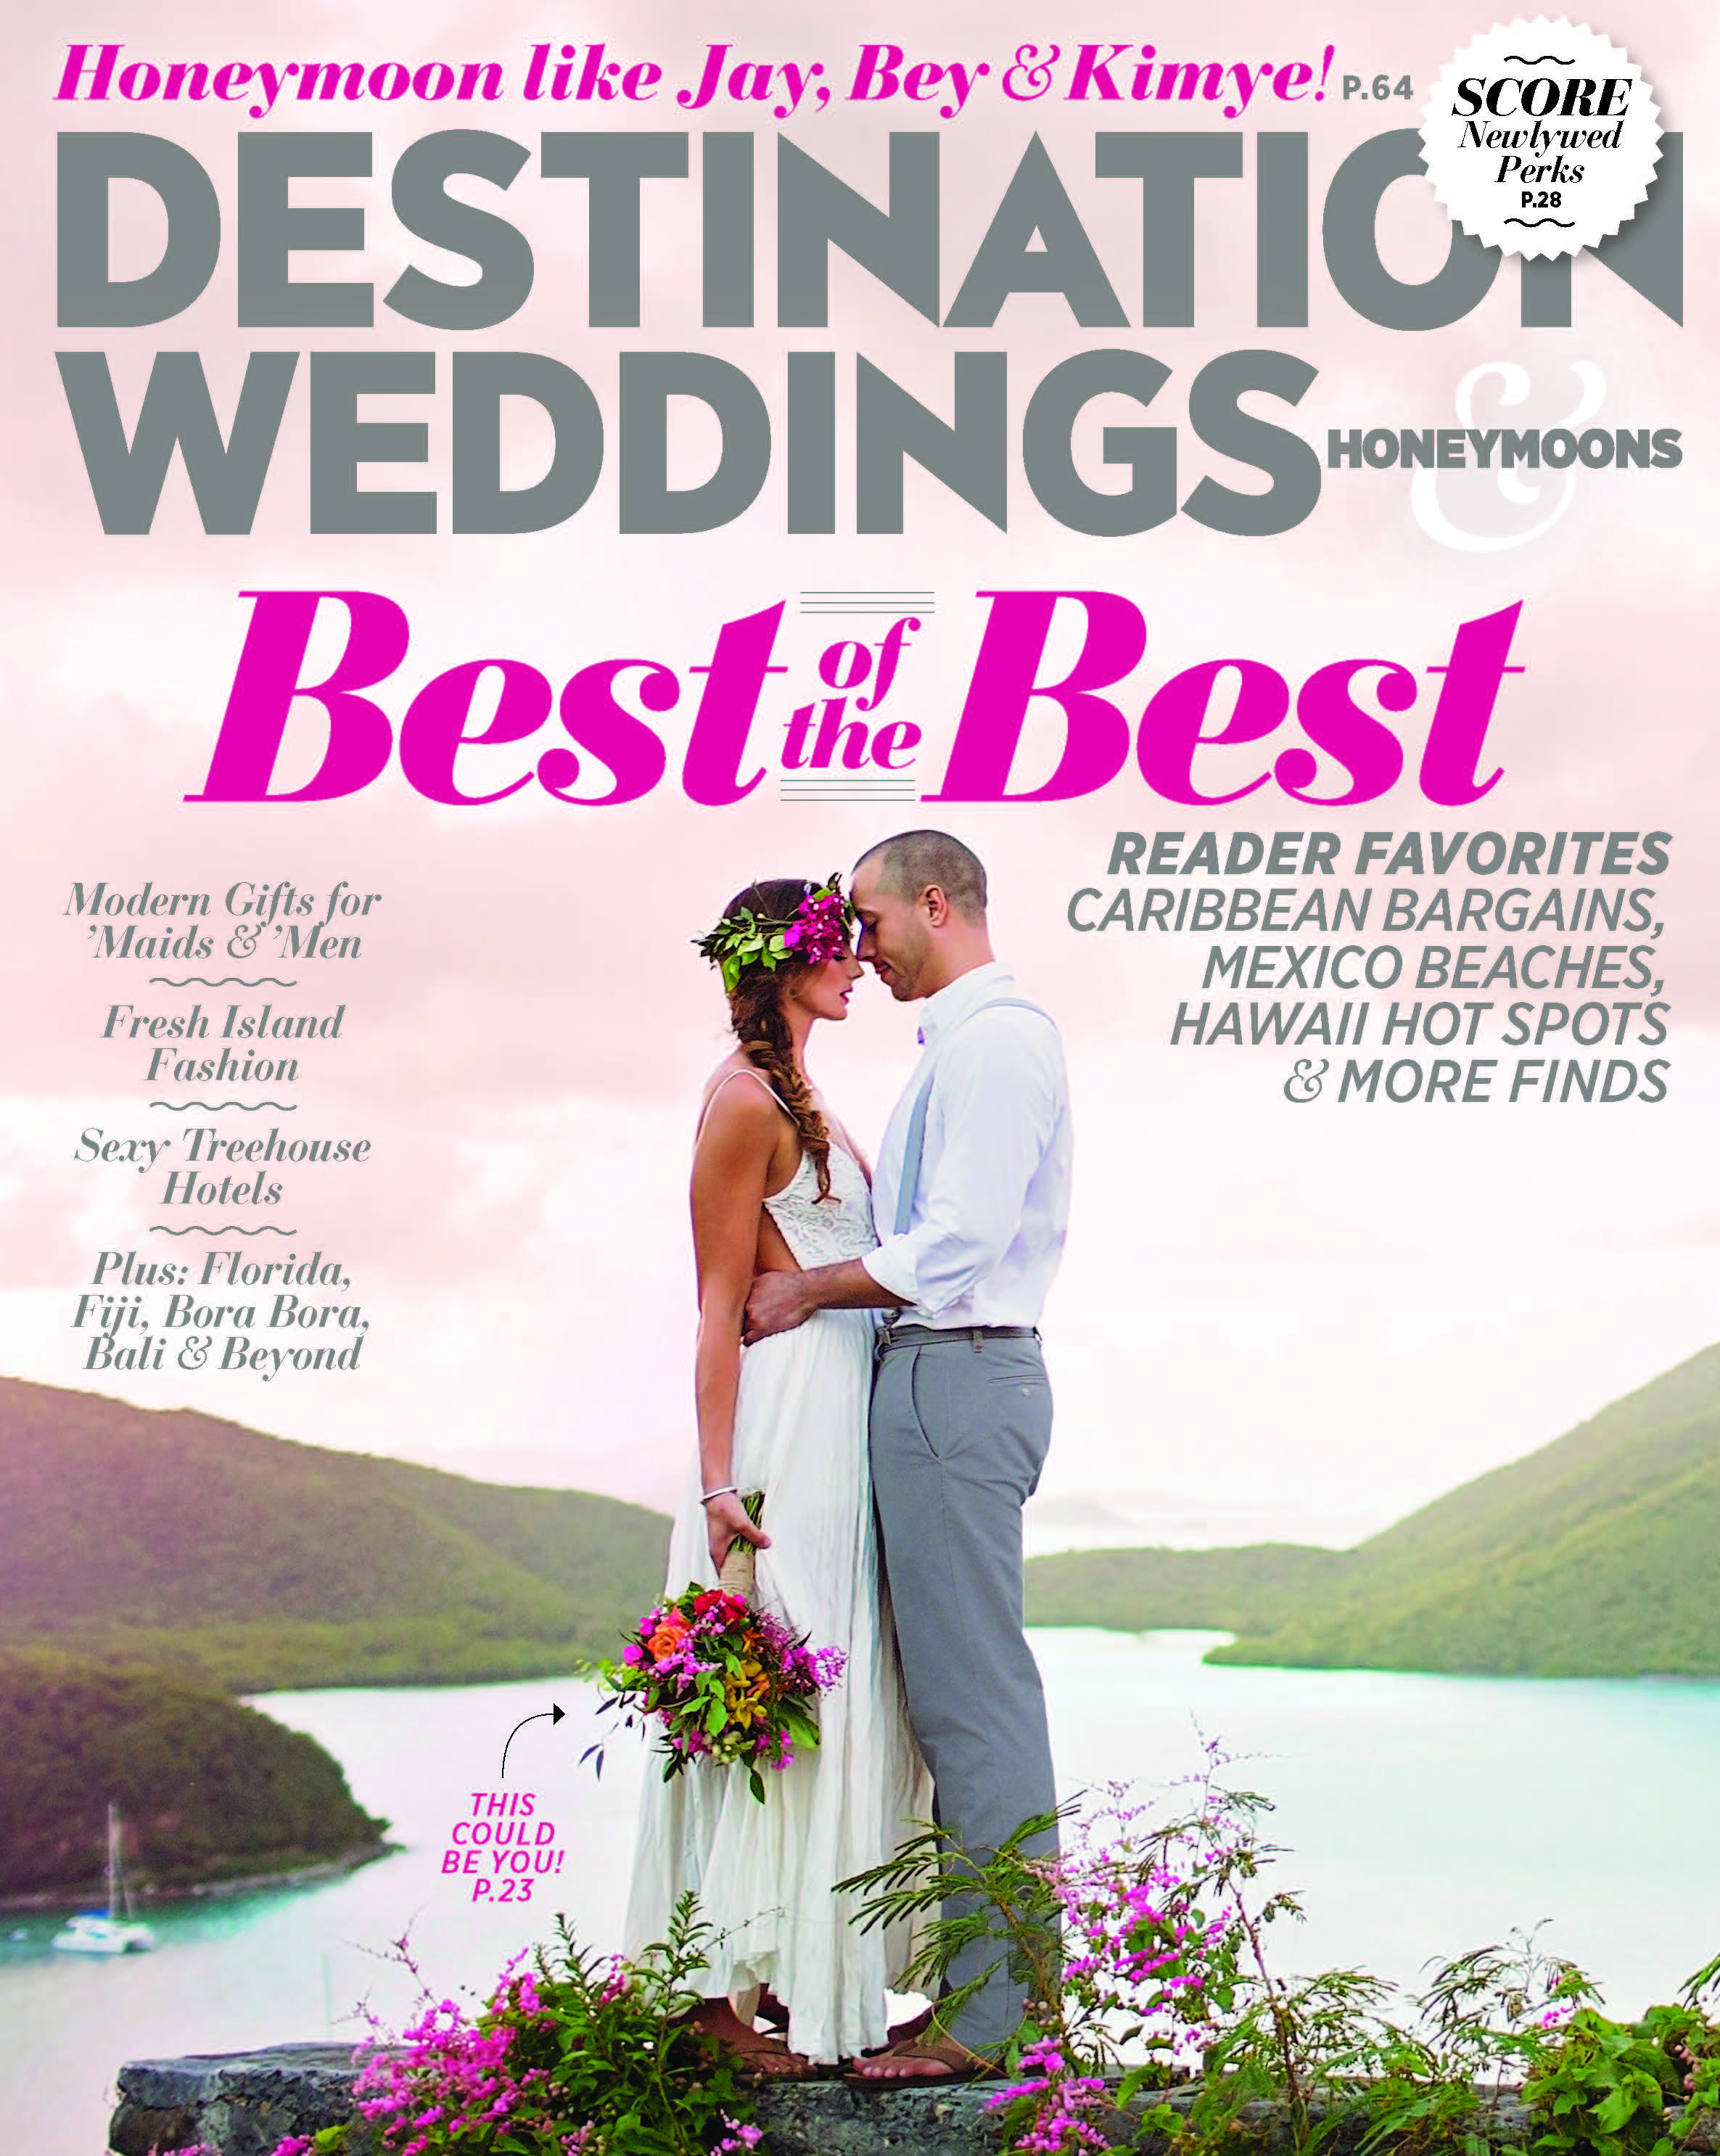 Destination weddings and honeymoons magazine featured Destination wedding planner Mango Muse Events